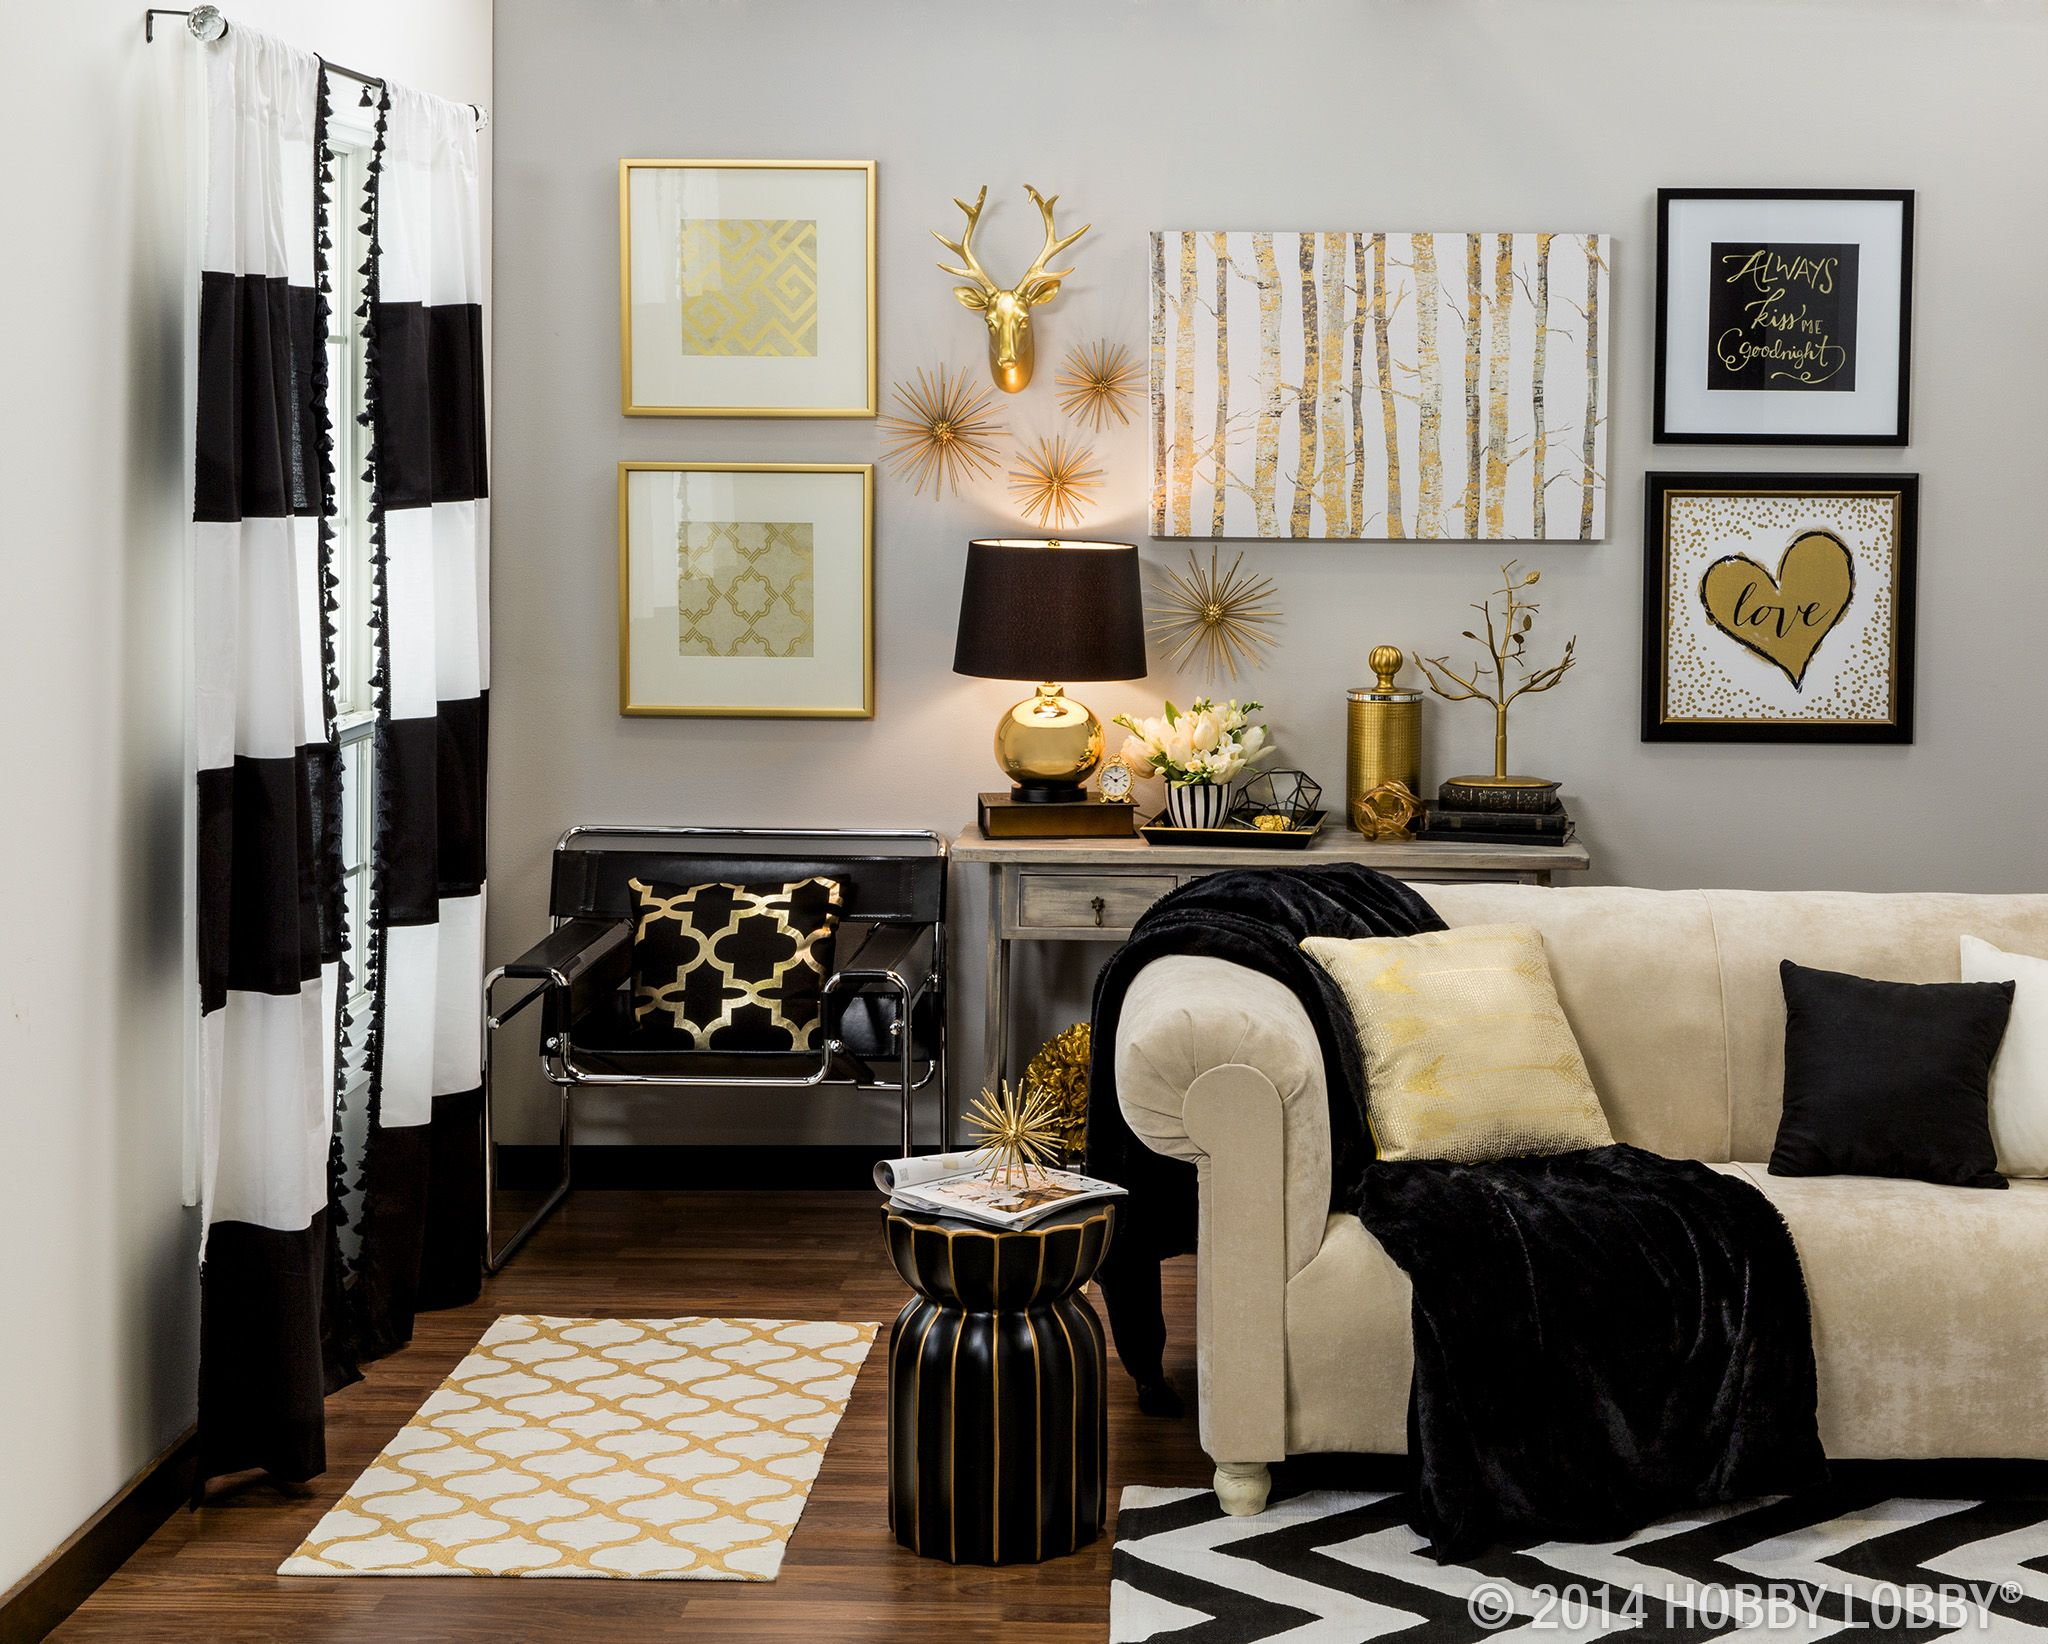 Best Make A Grand Statement With Metallic Gold And Black Home This Month